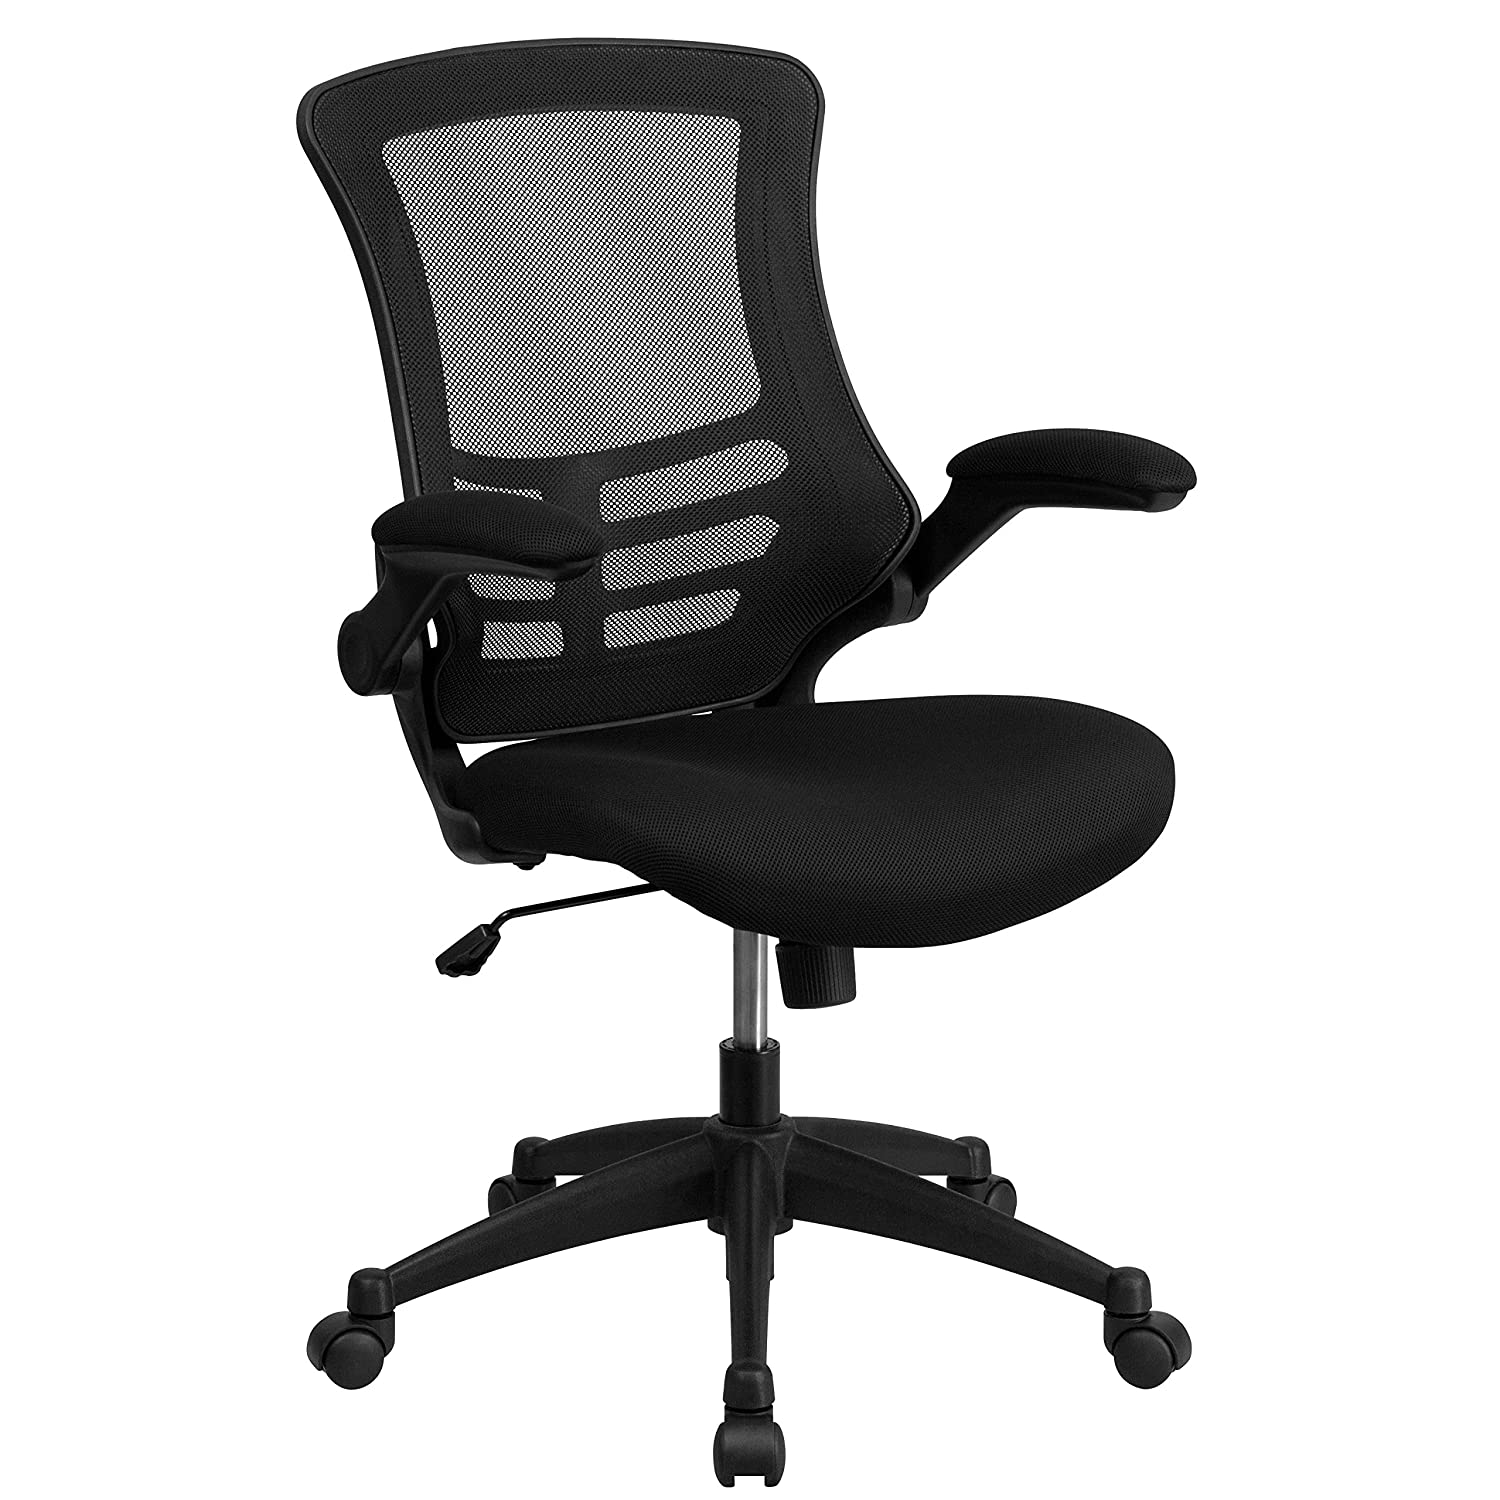 Best orthopedic office chairs oprthopedic office chair for Best office desk chairs